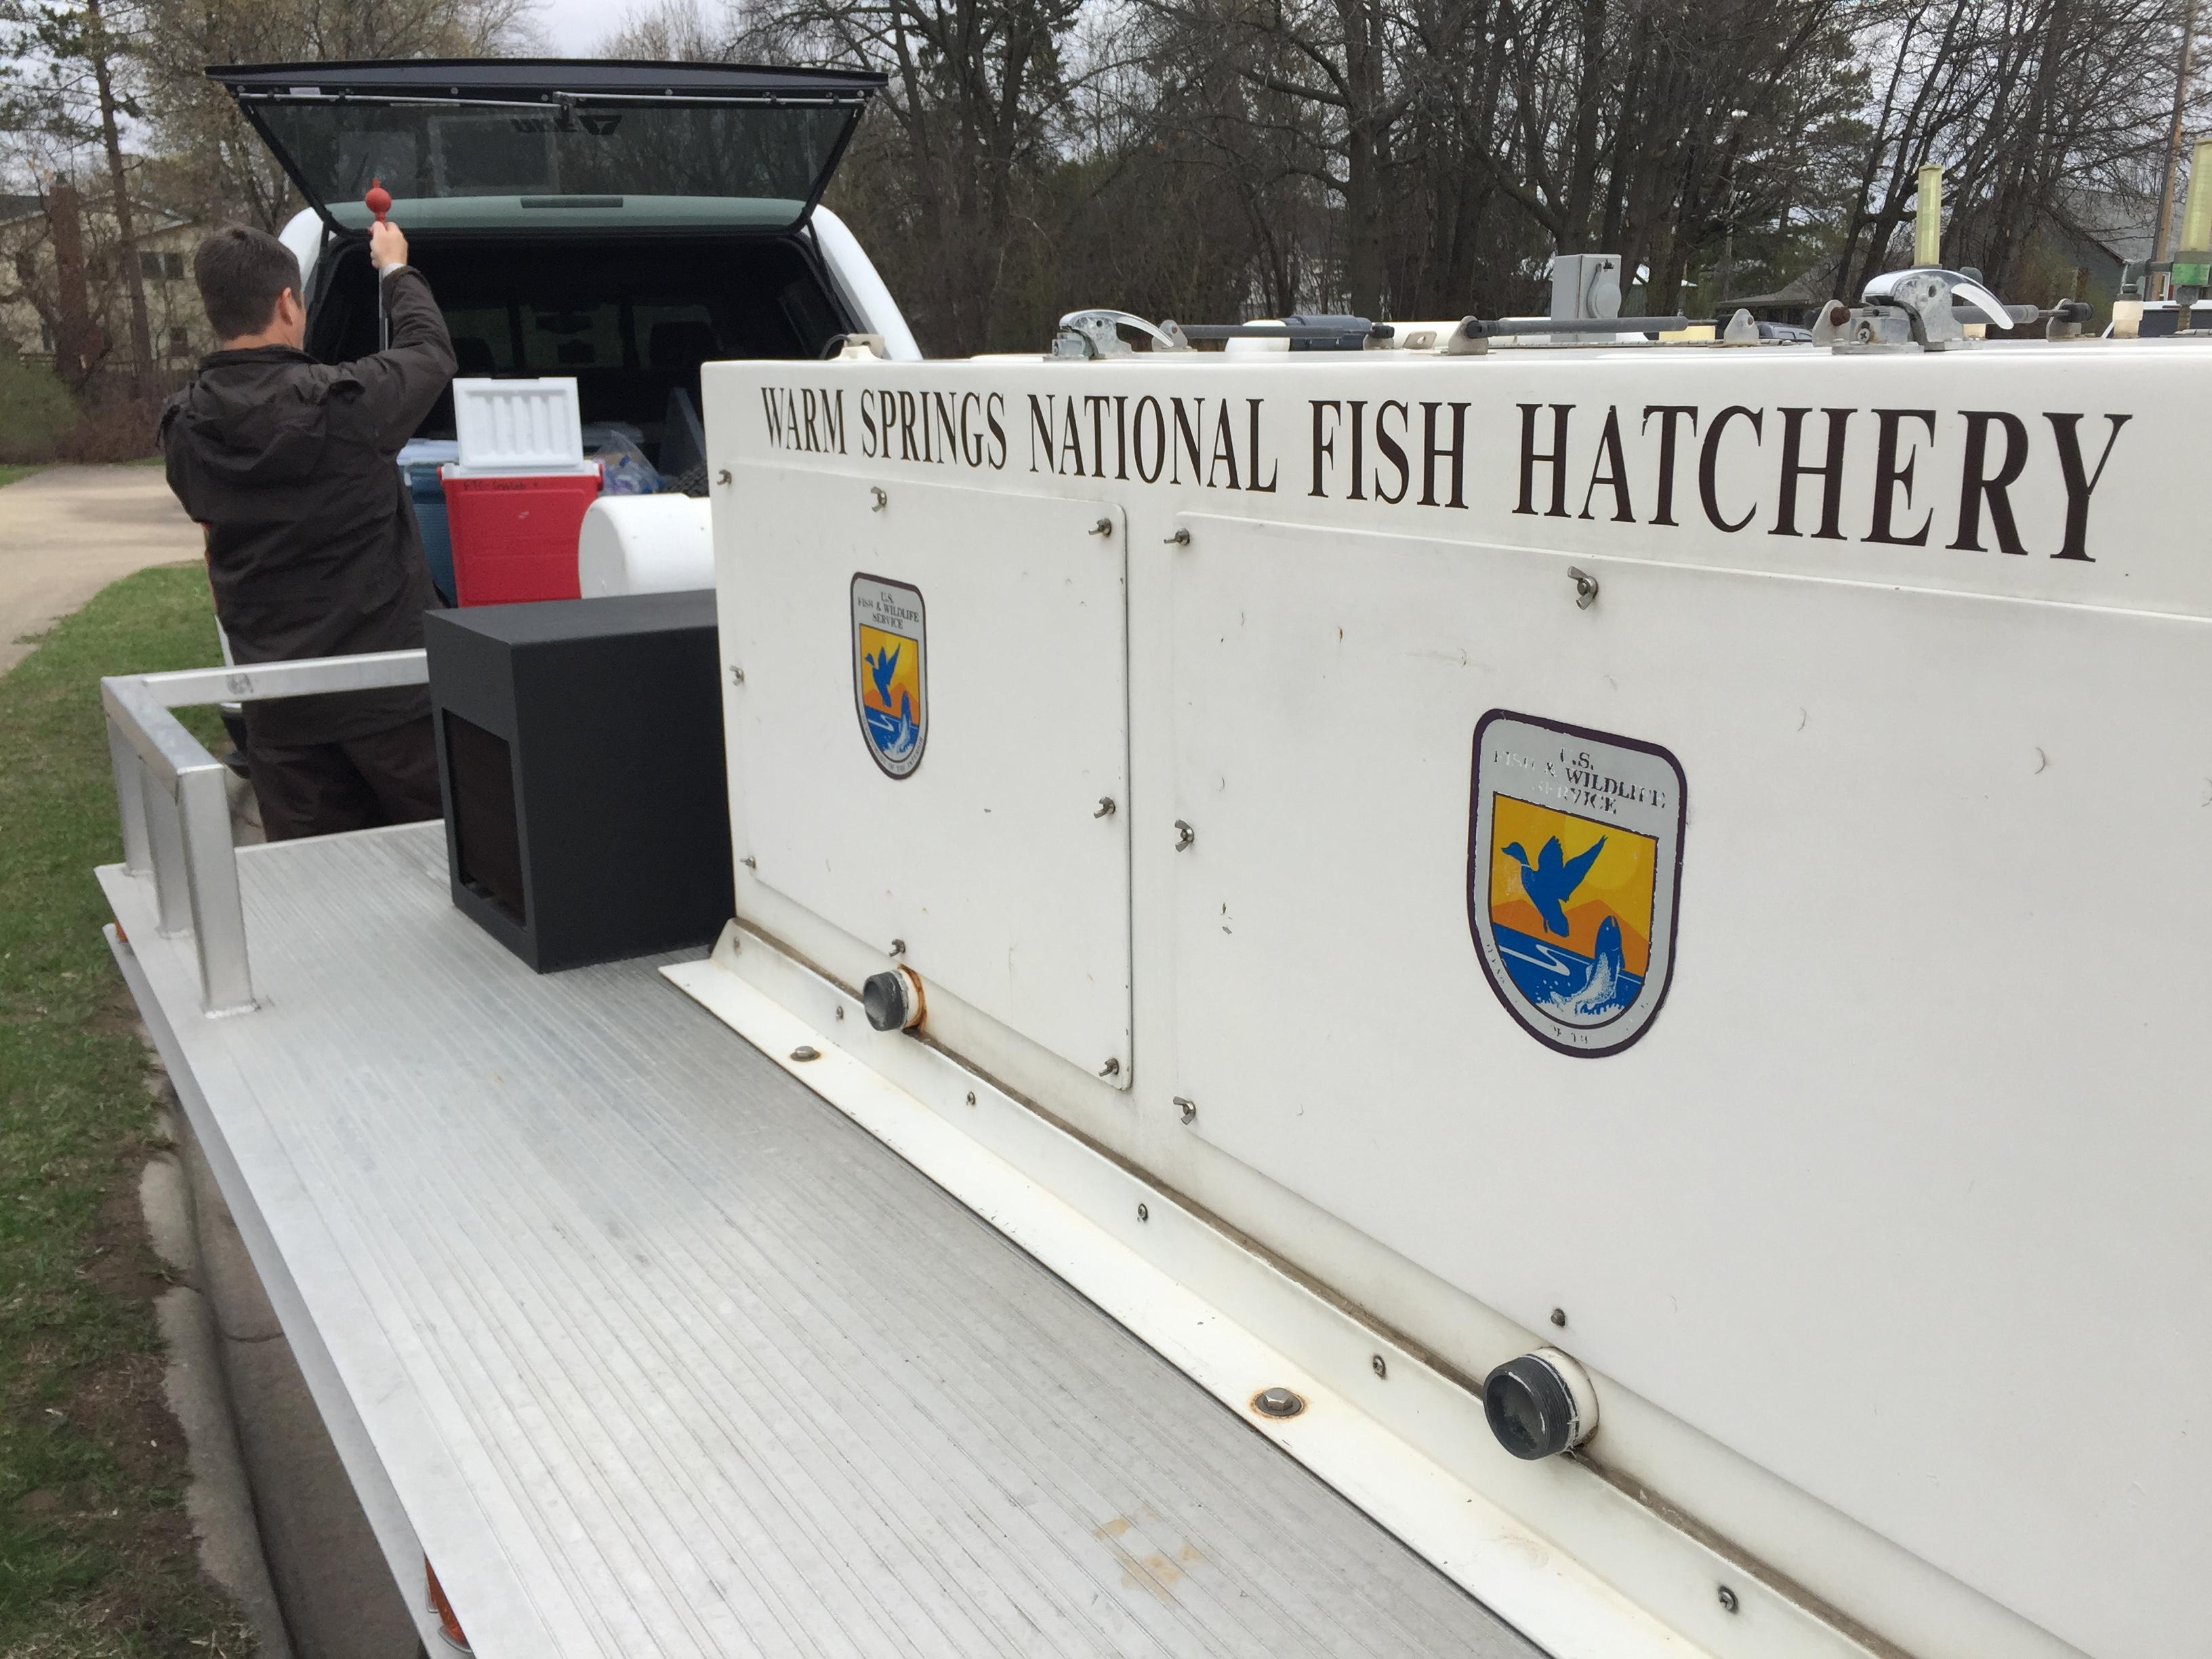 Hatchery truck from US Fish and Wildlife Service from Georgia, April 19, 2017 (WLUK/Eric Peterson)